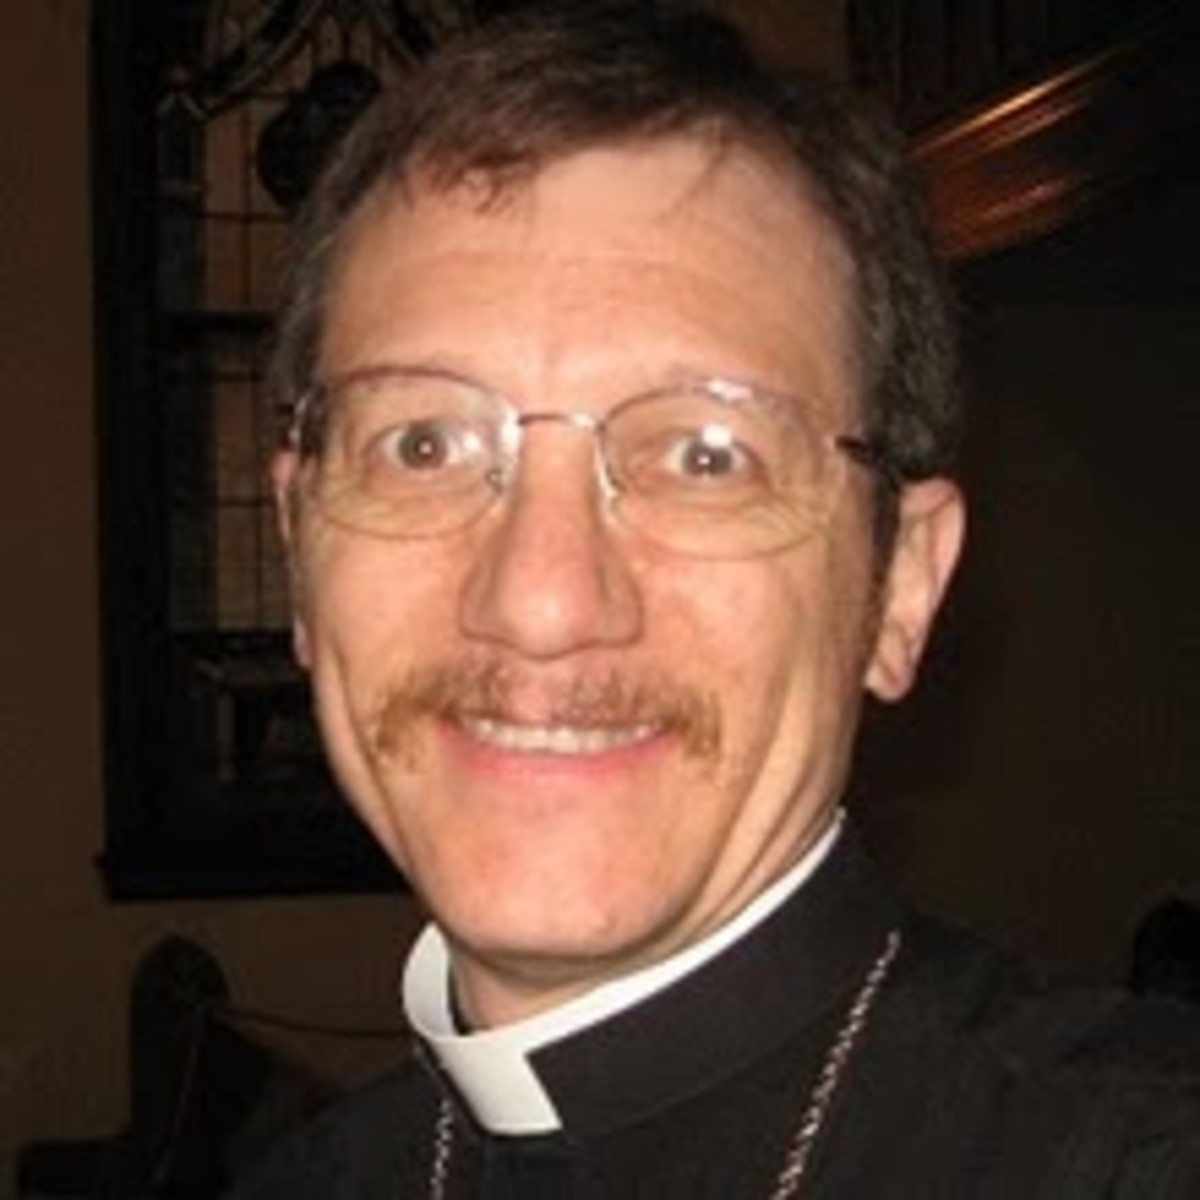 The Rev. Steven P. Tibbetts at Zion Evangelical Lutheran Church in Peoria, Illinois, has chosen to stay.